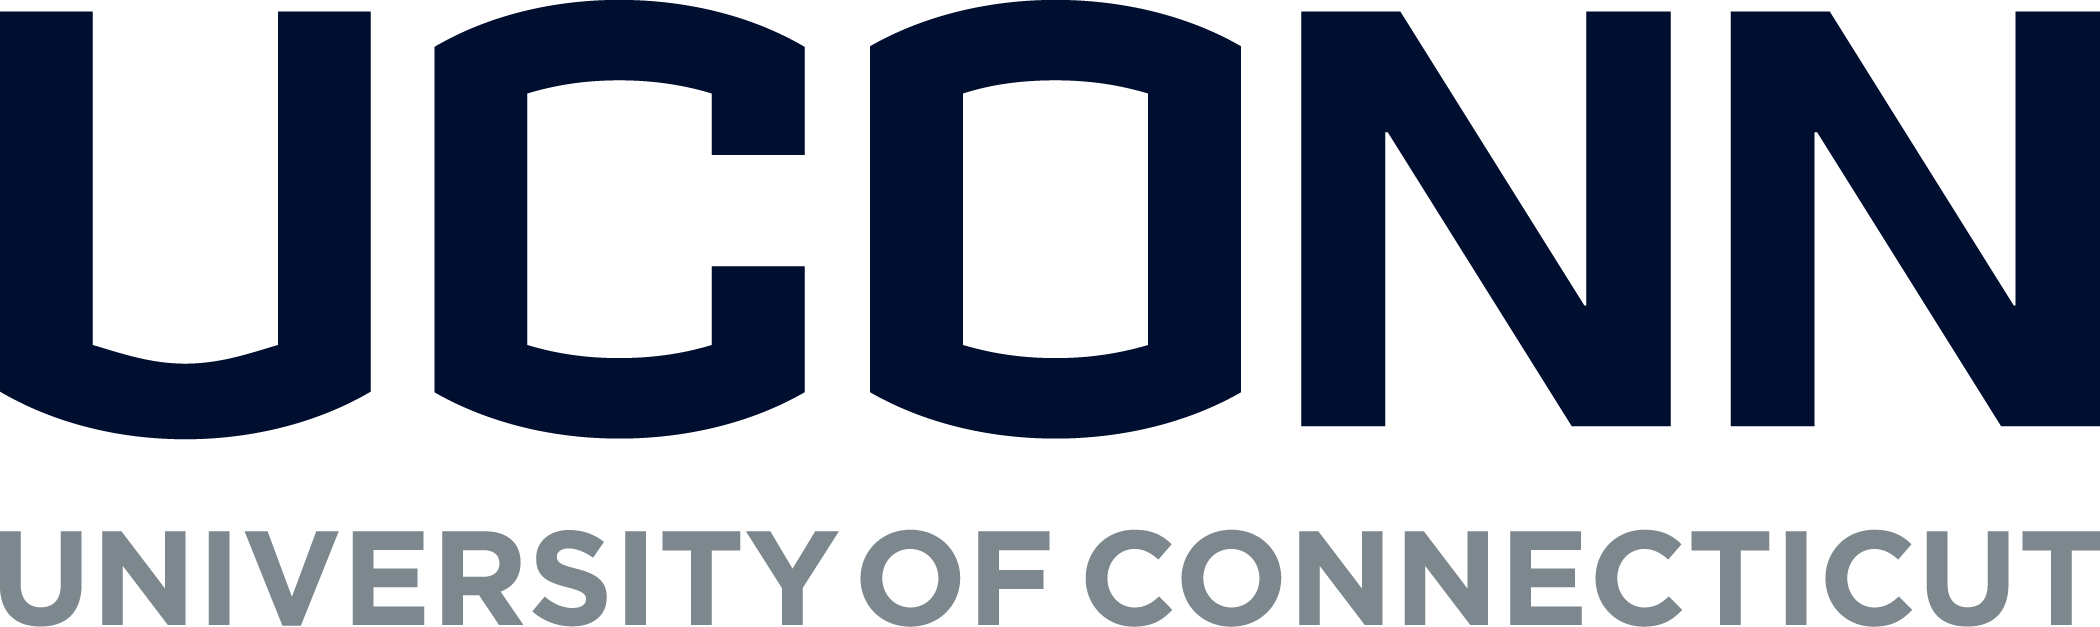 University of Connecticut - Quest Portal logo